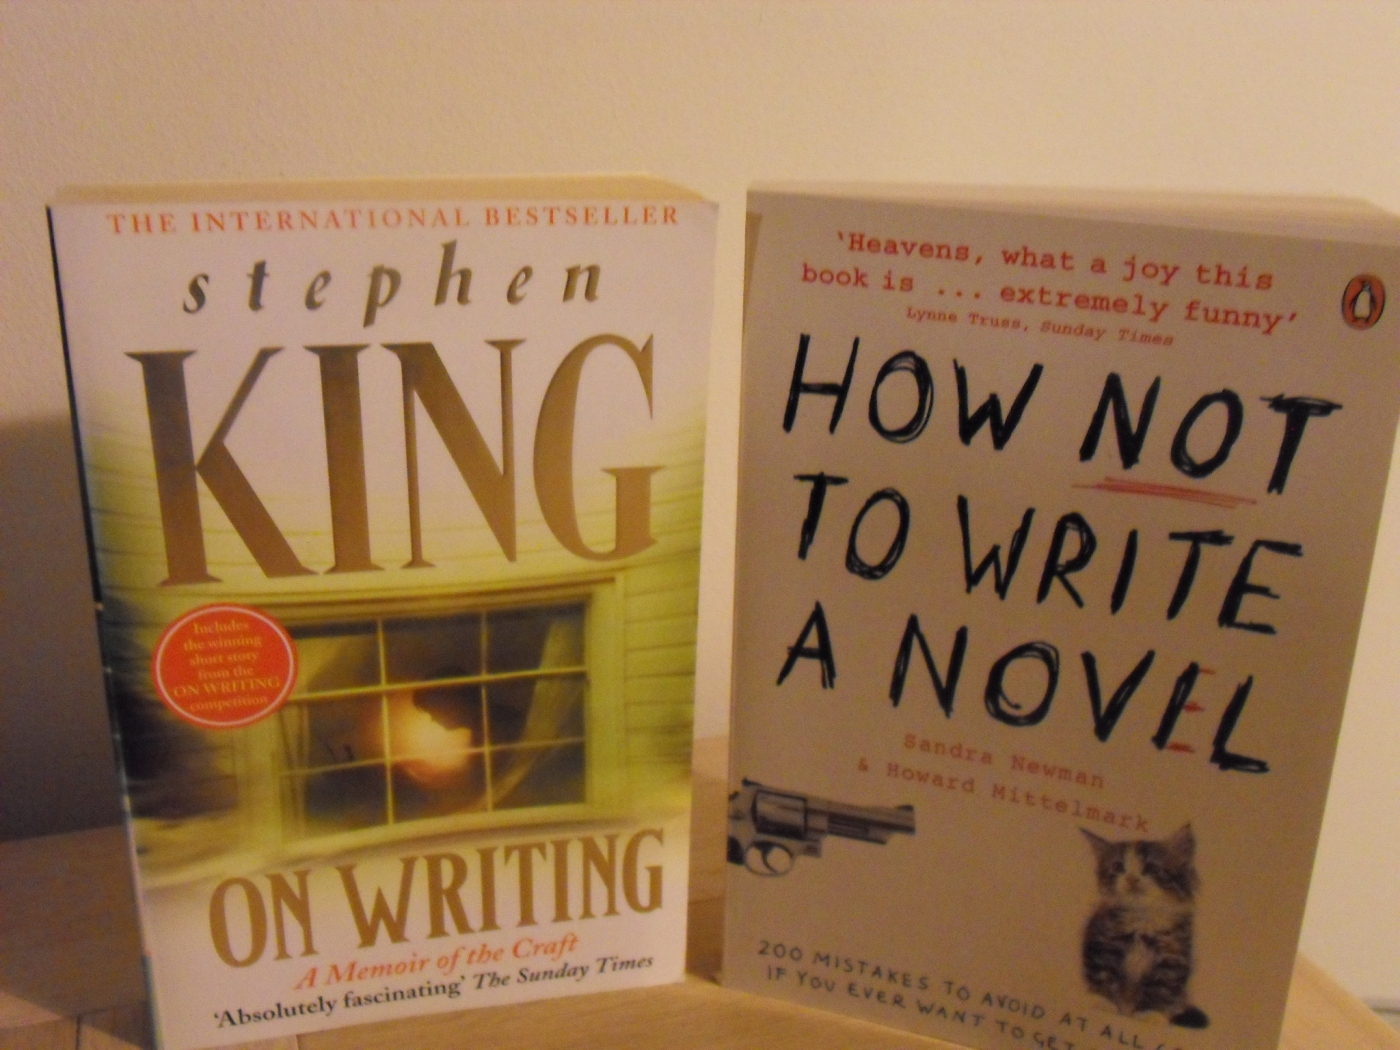 'On writing' by Stephen King and 'How not to write a novel' by Newman and Mittelmark